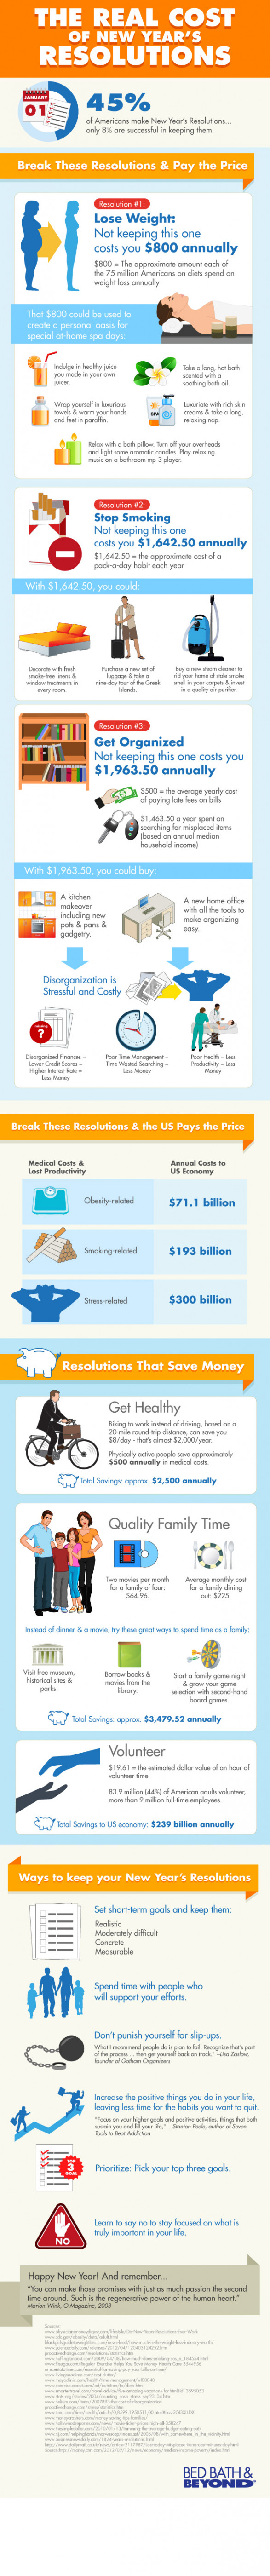 The Real Cost of New Year�s Resolutions